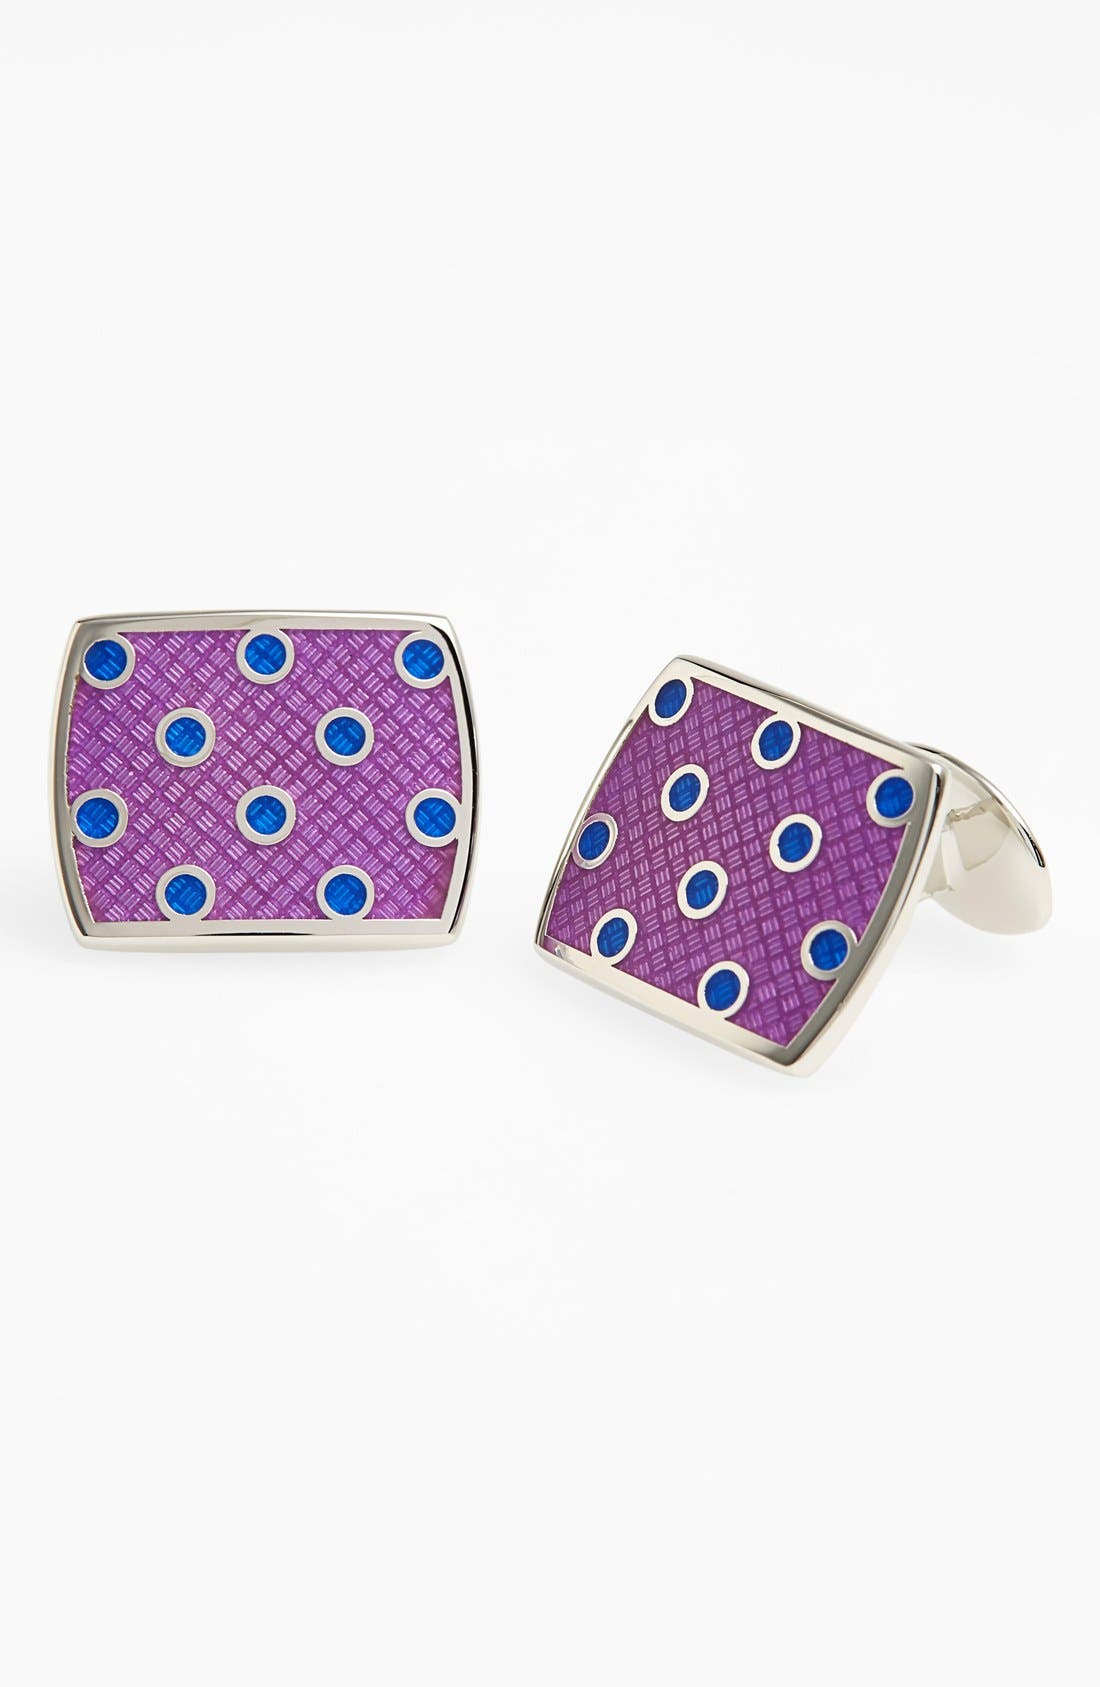 Polka Dot Cuff Links,                             Main thumbnail 1, color,                             044